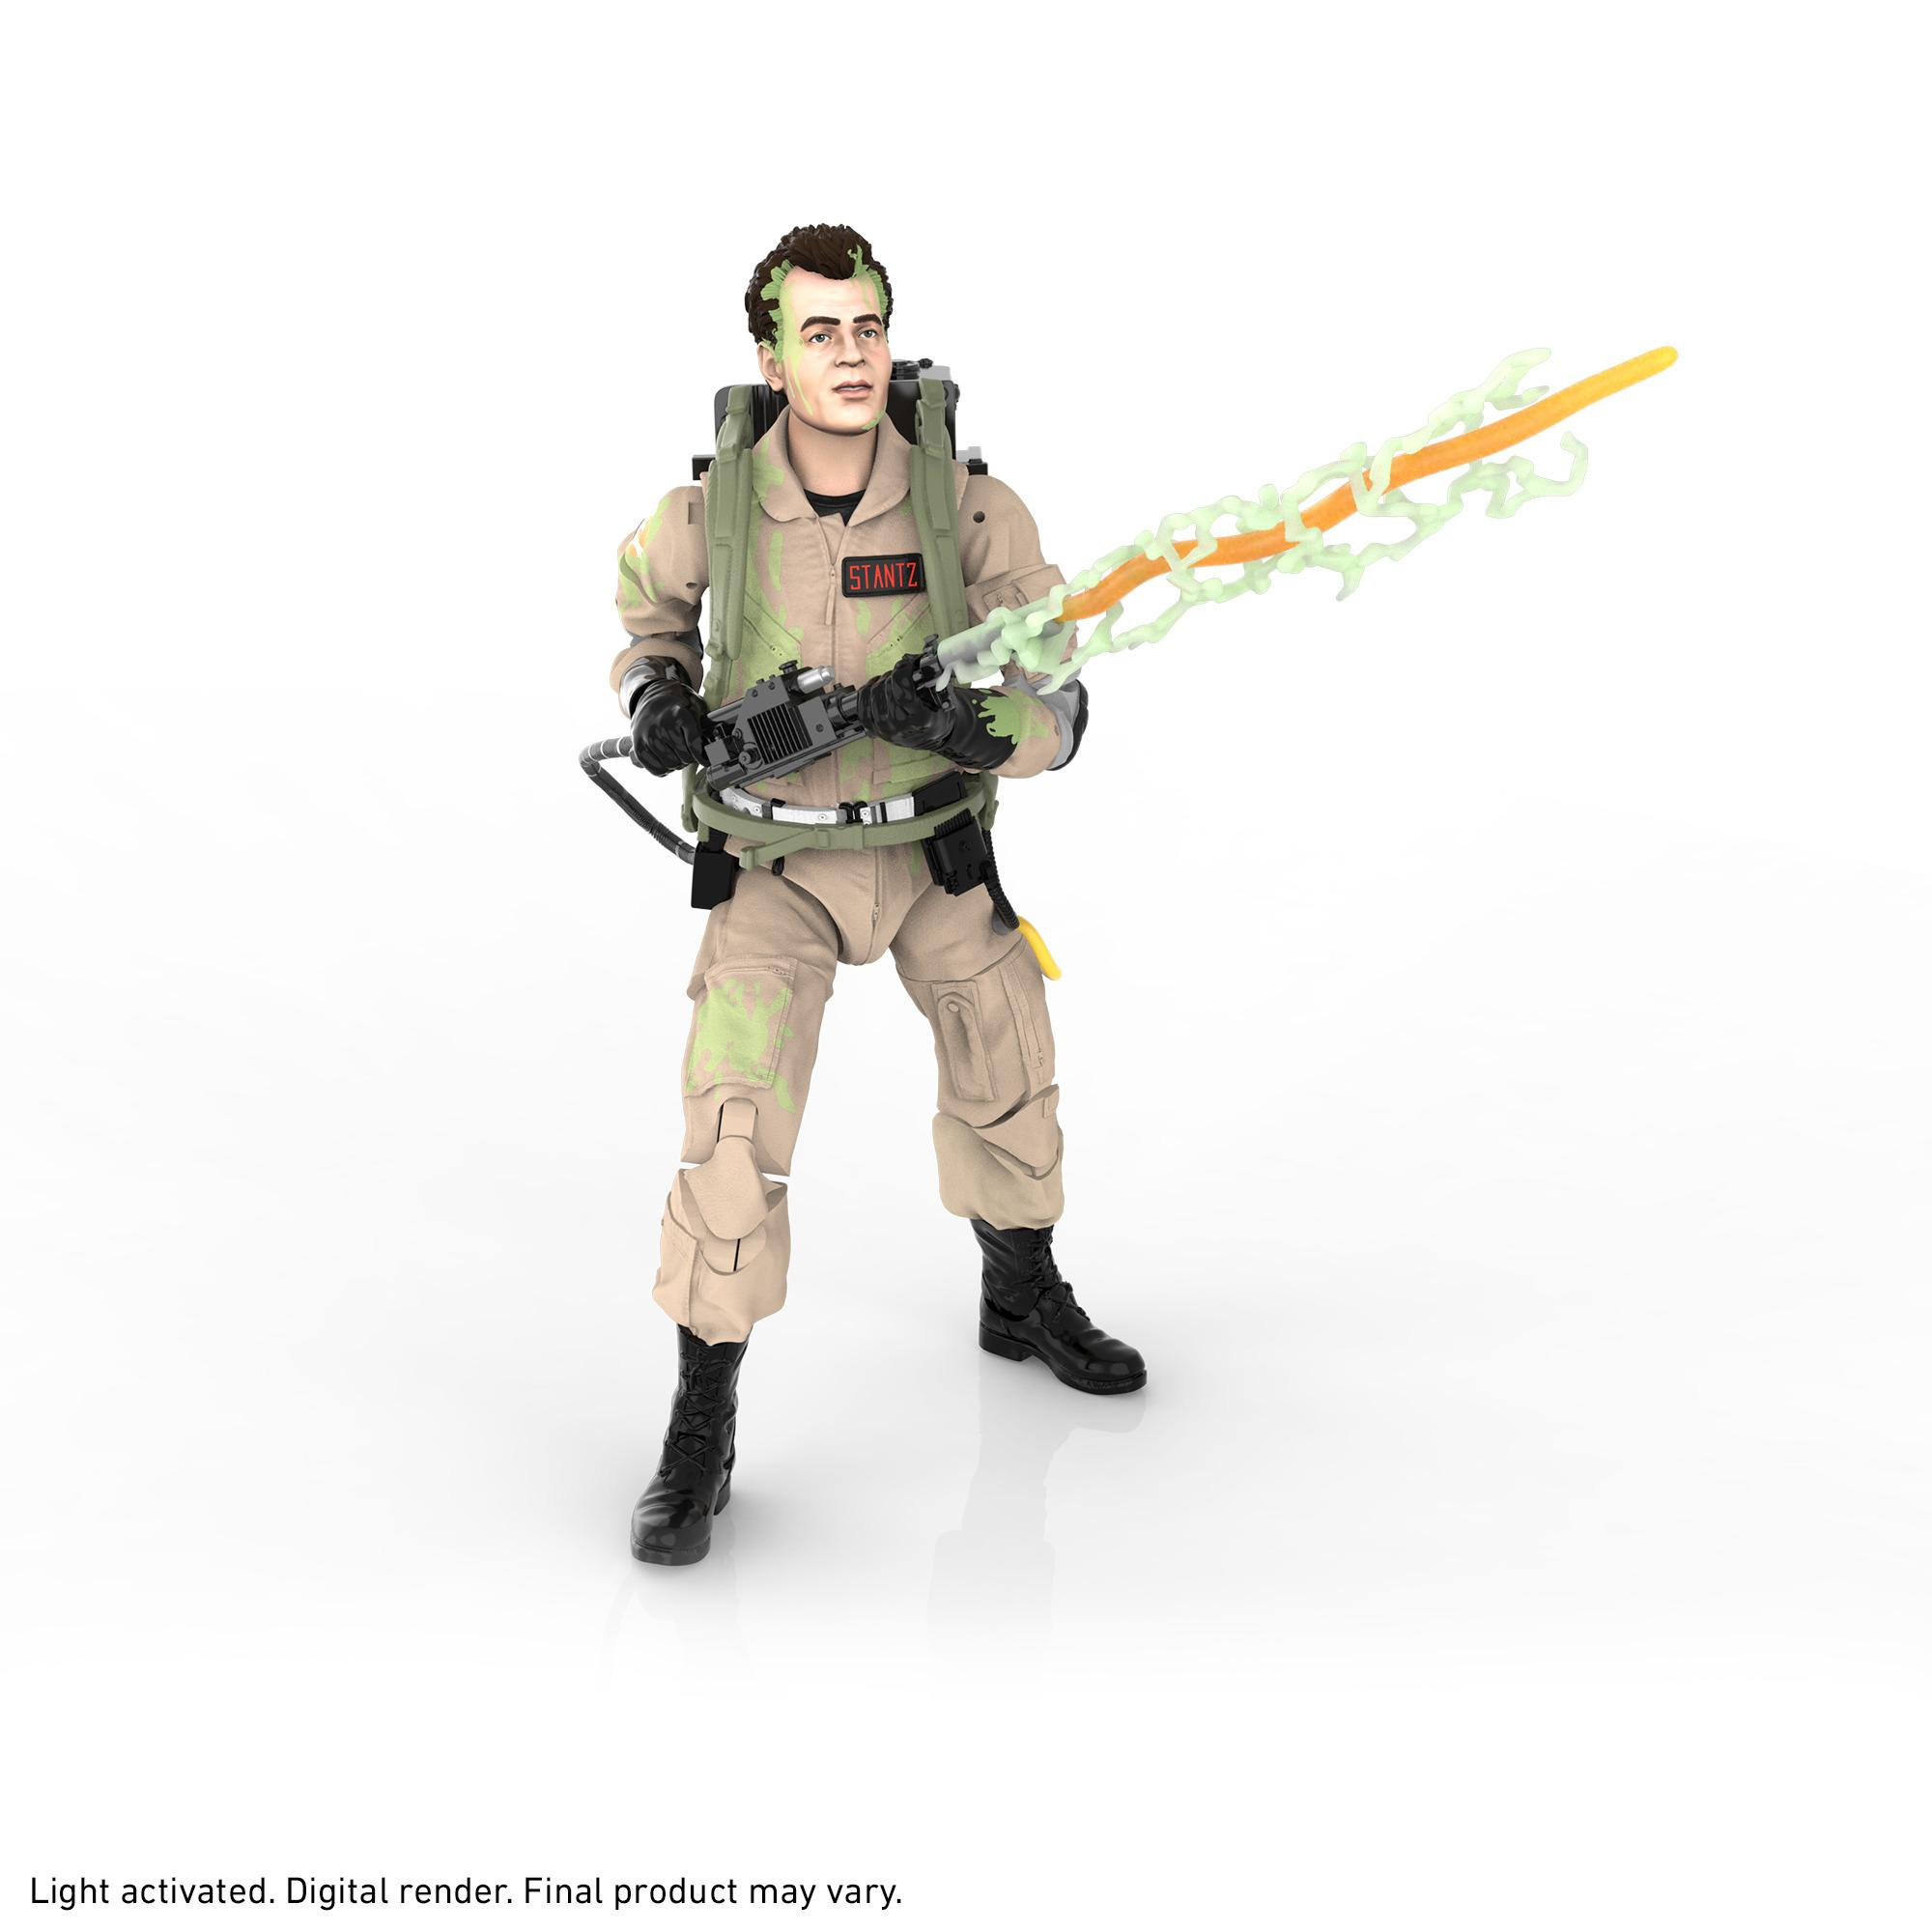 Ghostbusters Plasma Series Glow-in-the-Dark Ray Stantz Toy 6-Inch-Scale Collectible Classic 1984 Ghostbusters Figure